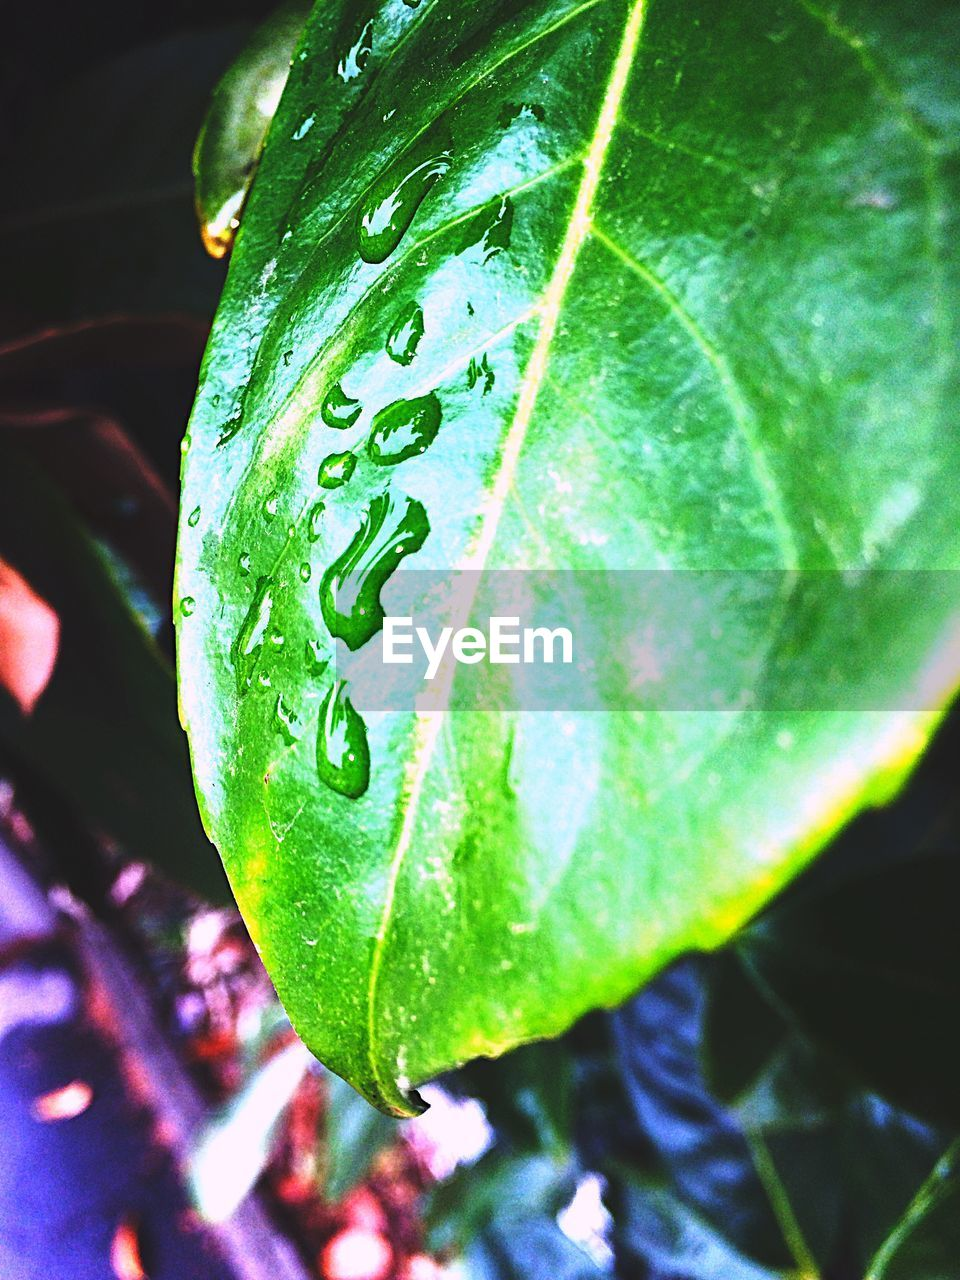 green color, close-up, plant part, plant, leaf, growth, nature, no people, freshness, water, drop, wet, focus on foreground, beauty in nature, day, outdoors, green, purity, animal, dew, leaves, raindrop